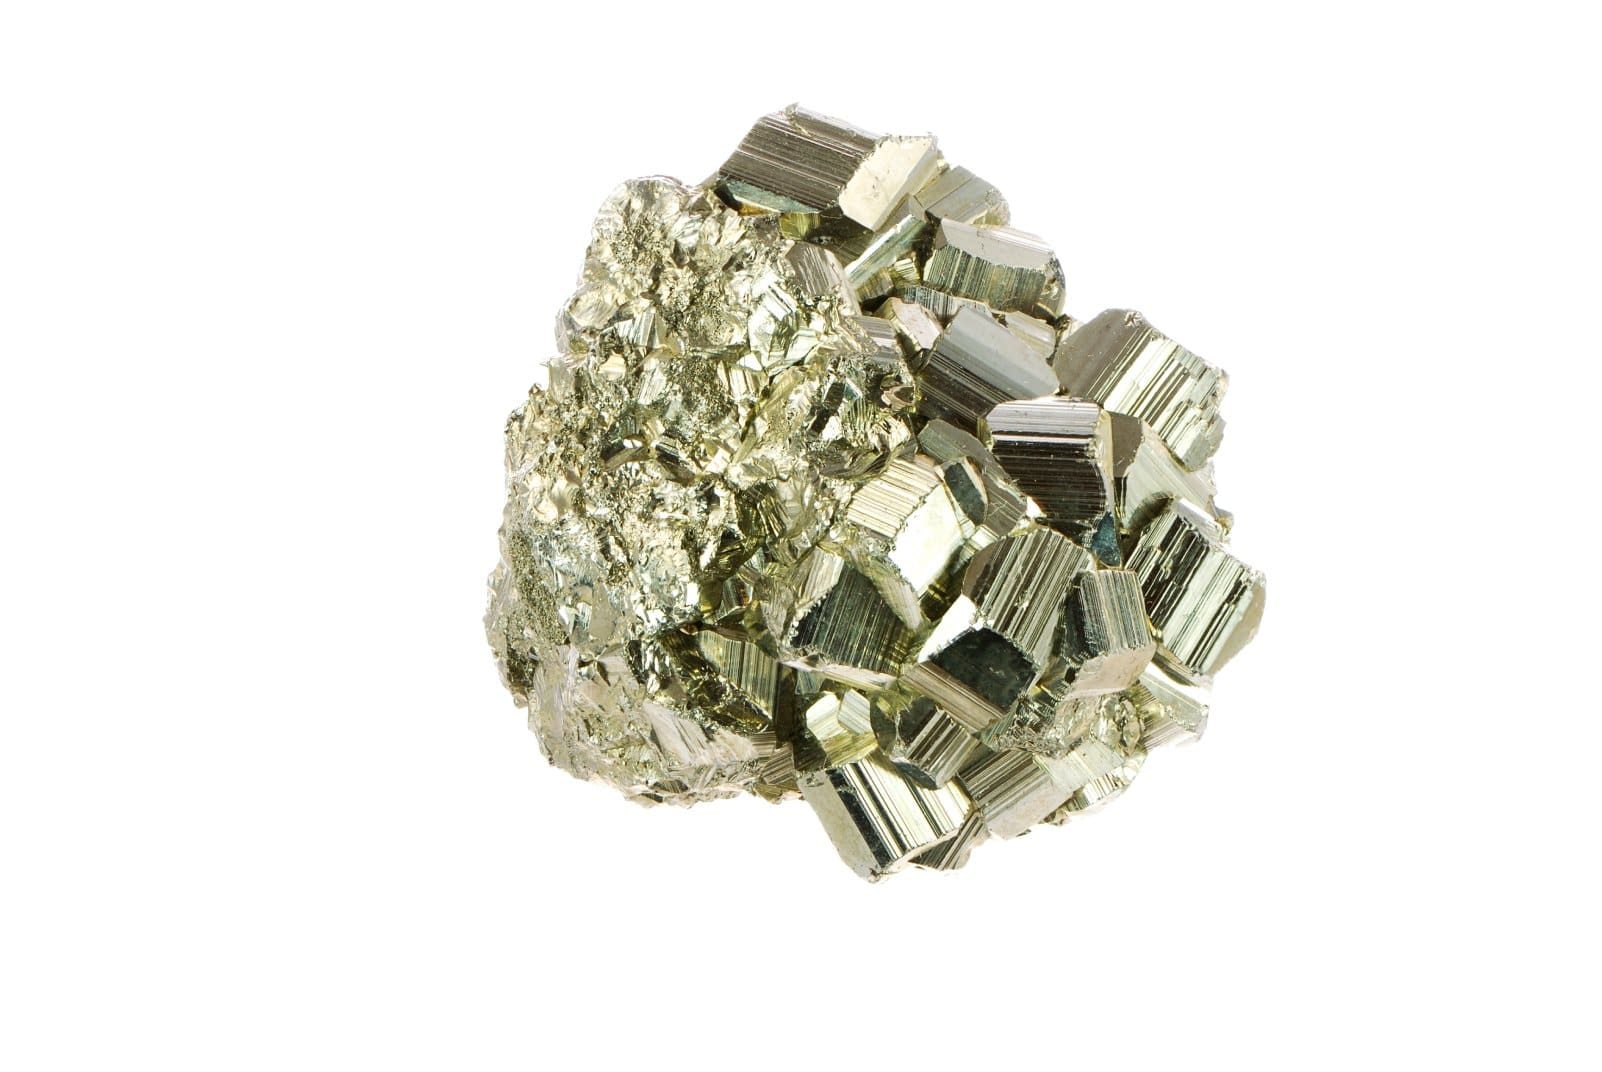 pyrite crystals for money